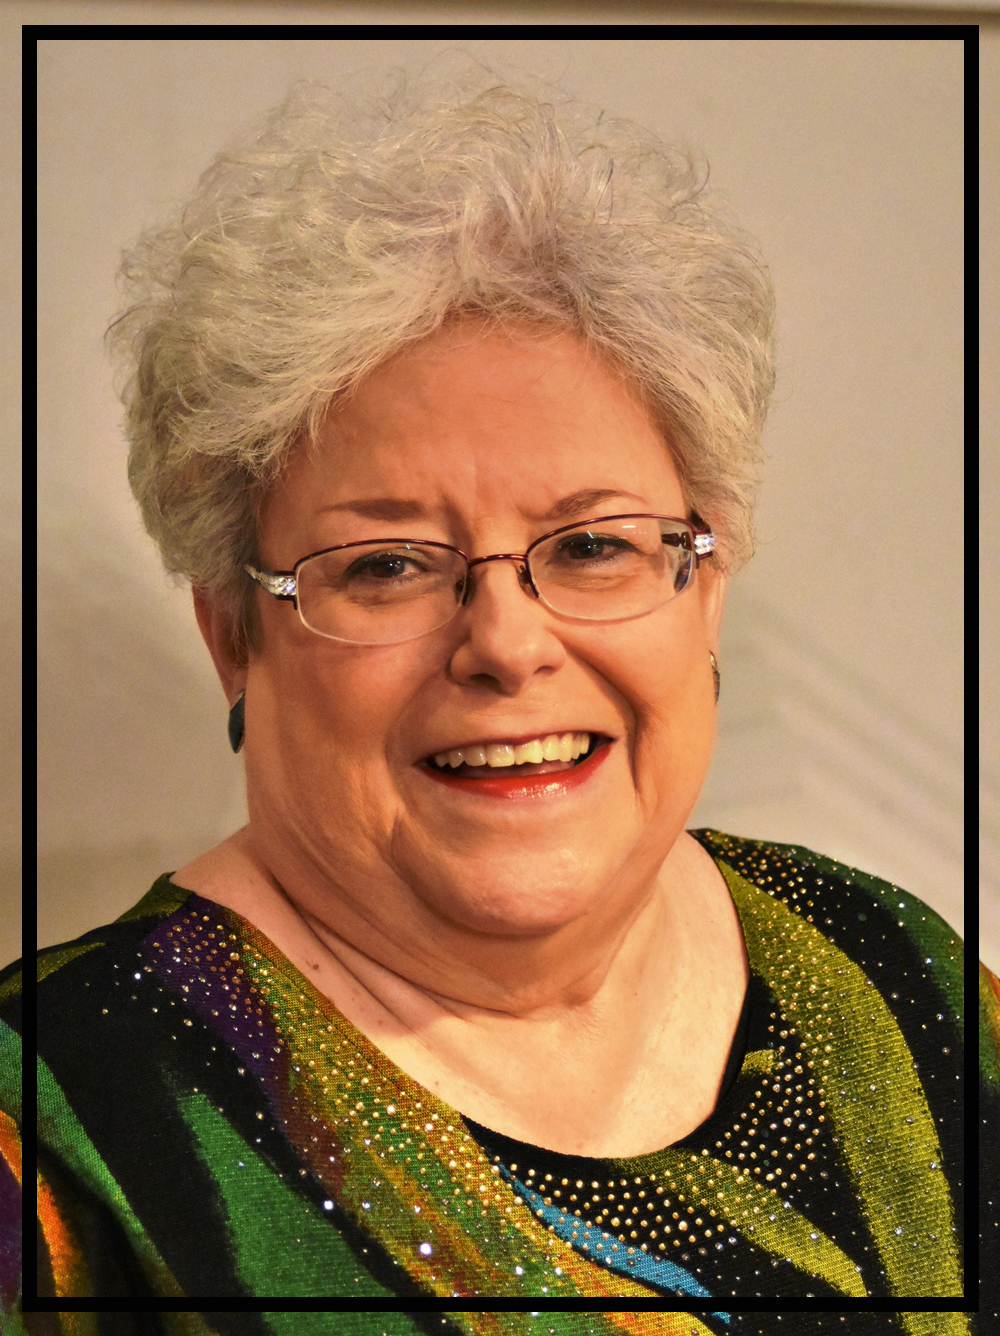 Organist: Linda Gilbert - How long have you been on staff at FUMC? I